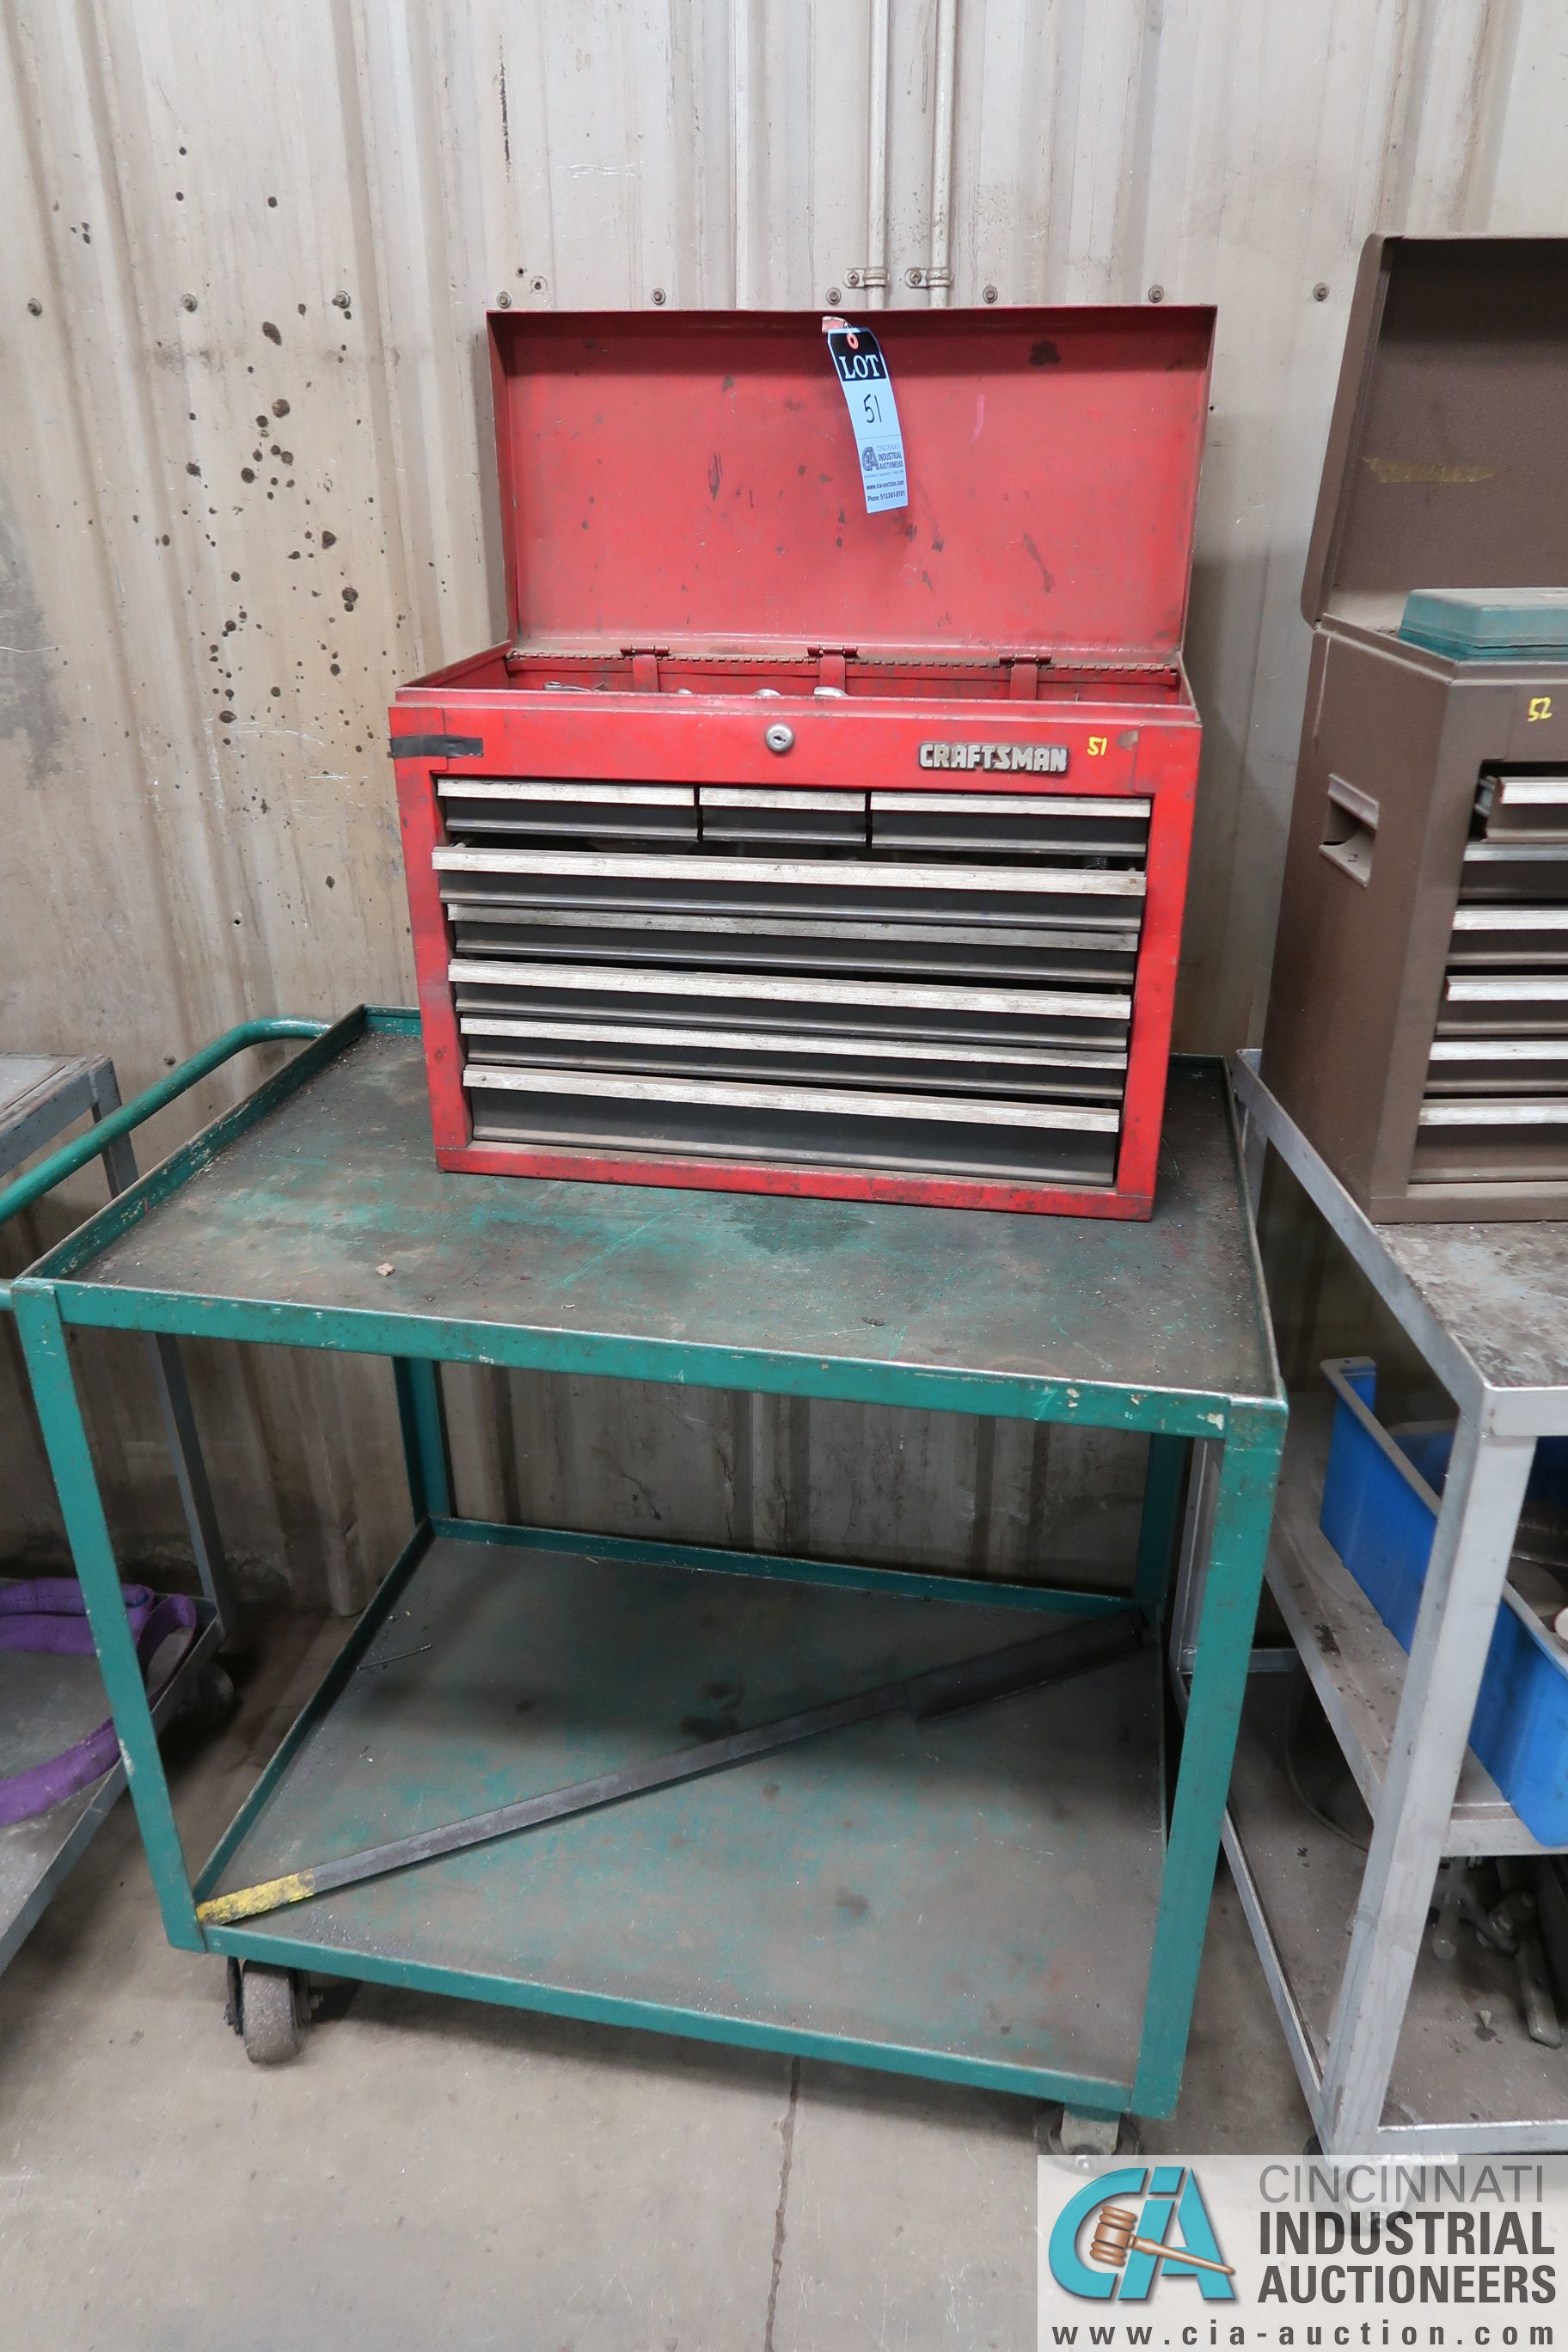 8-DRAWER CRAFTSMAN TOOL BOX WITH TOOLS AND CART